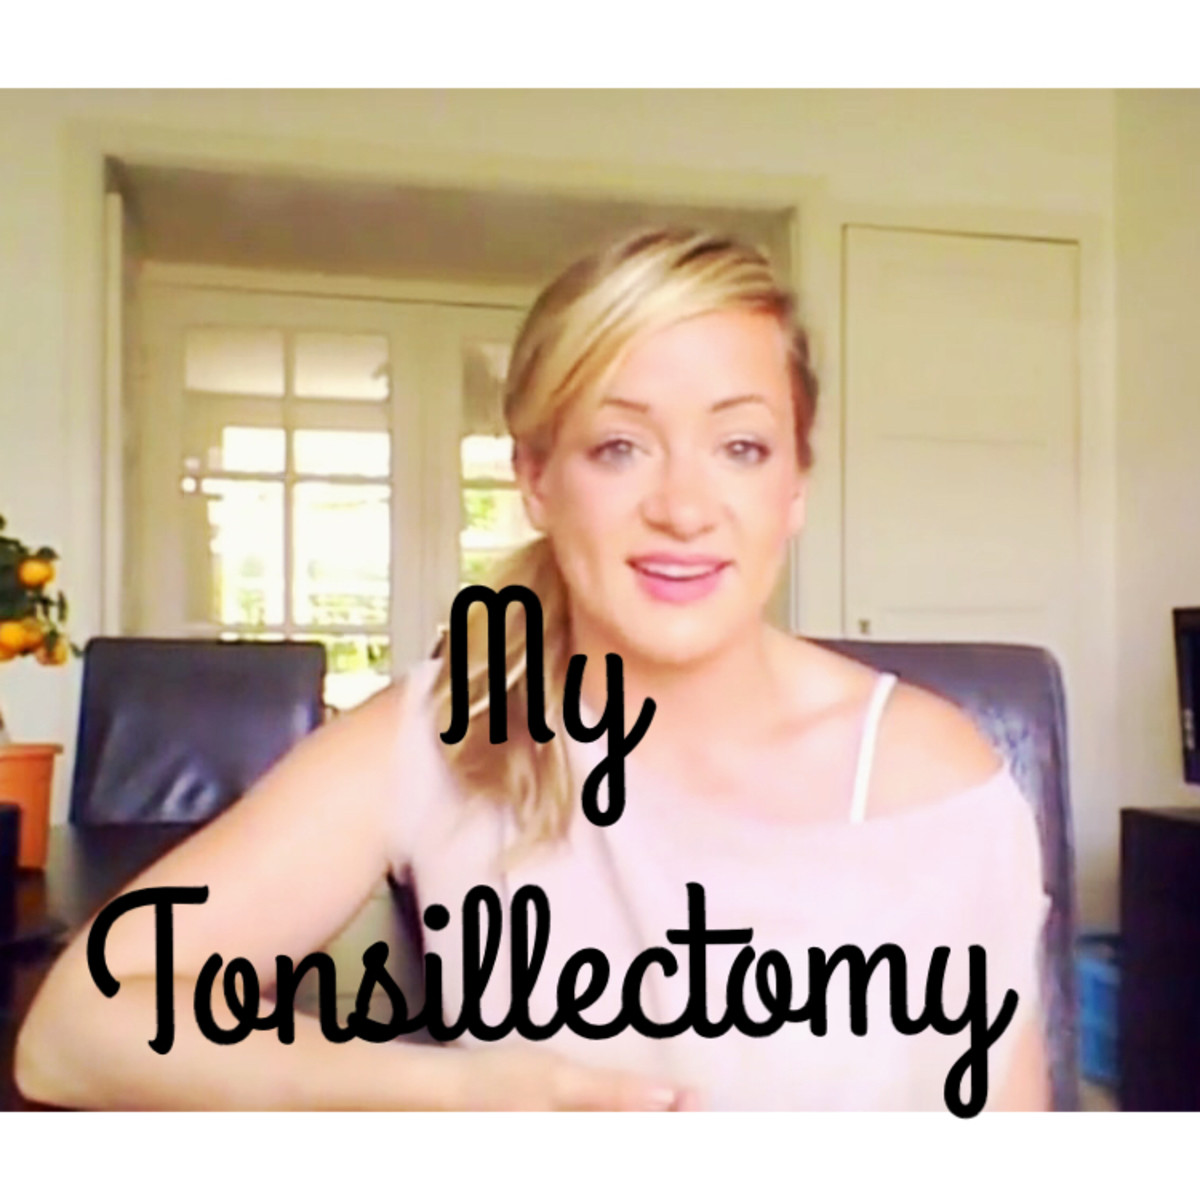 tonsillectomy-the-dos-and-donts-and-how-to-recover-quickly